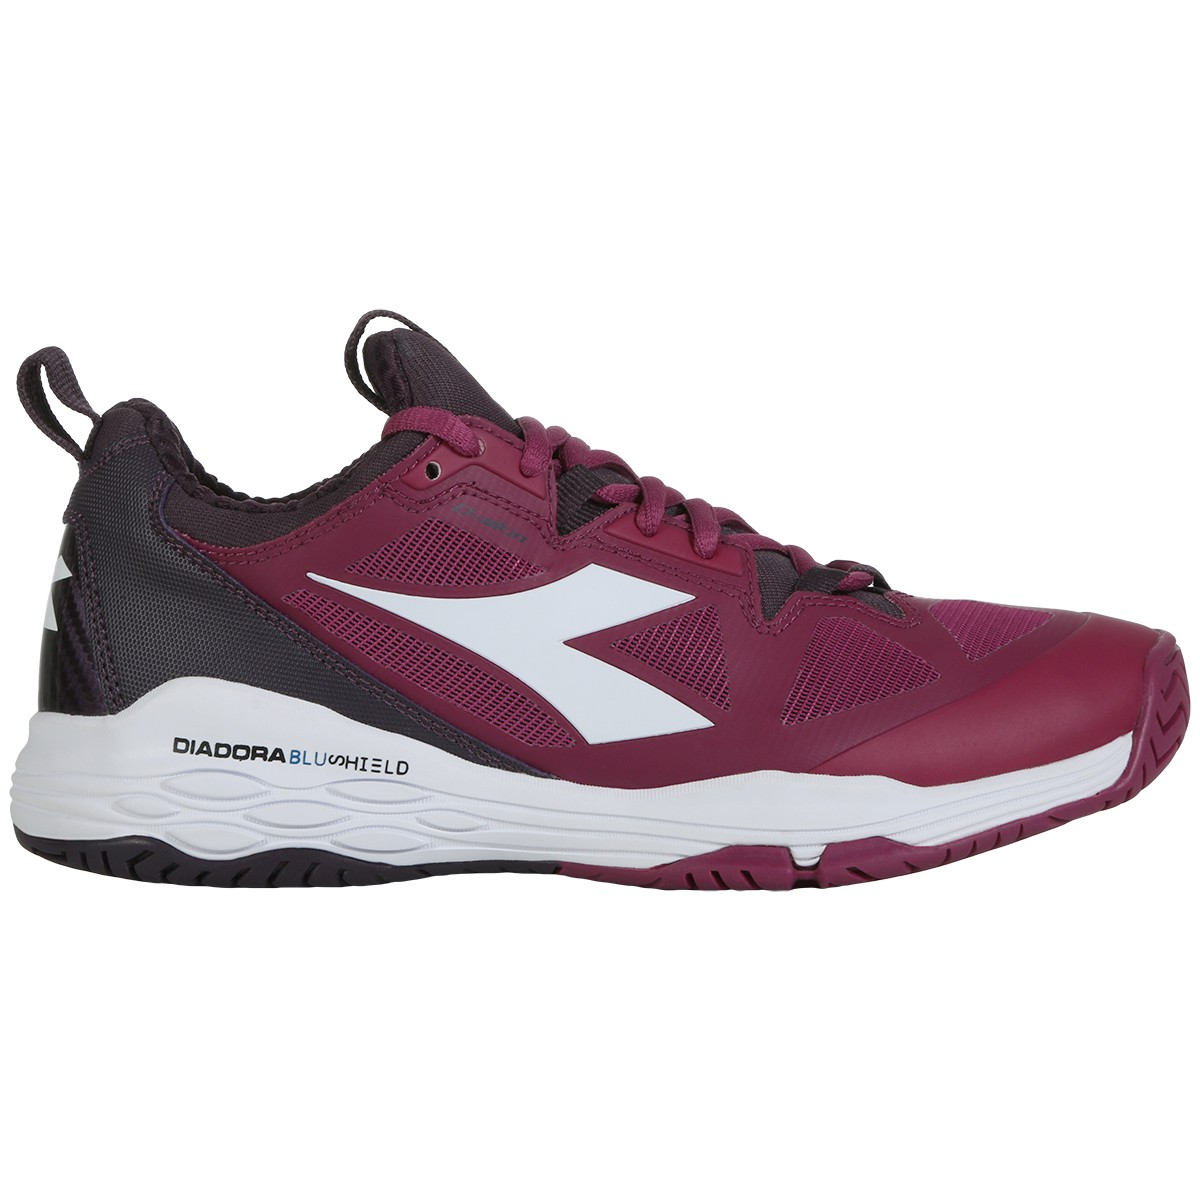 WOMEN'S DIADORA SPEED BLUSHIELD FLY 2 ALL COURT SHOES